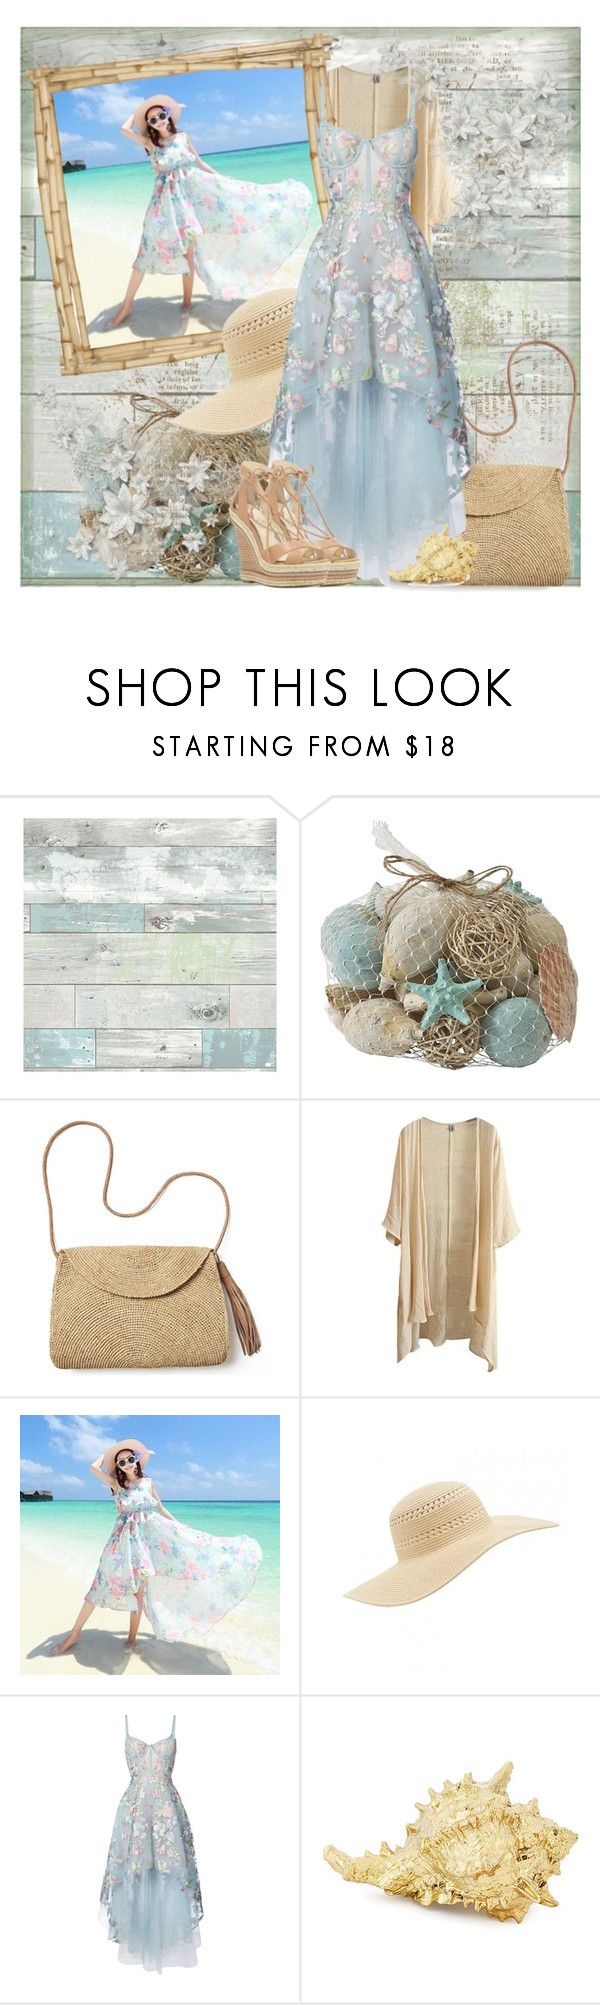 """""""Day At The Beach"""" by melissaandjasperforever ❤ liked on Polyvore featuring Wall Pops!, Pier 1 Imports, Mar y Sol, Millà, Notte by Marchesa and Jessica Simpson"""